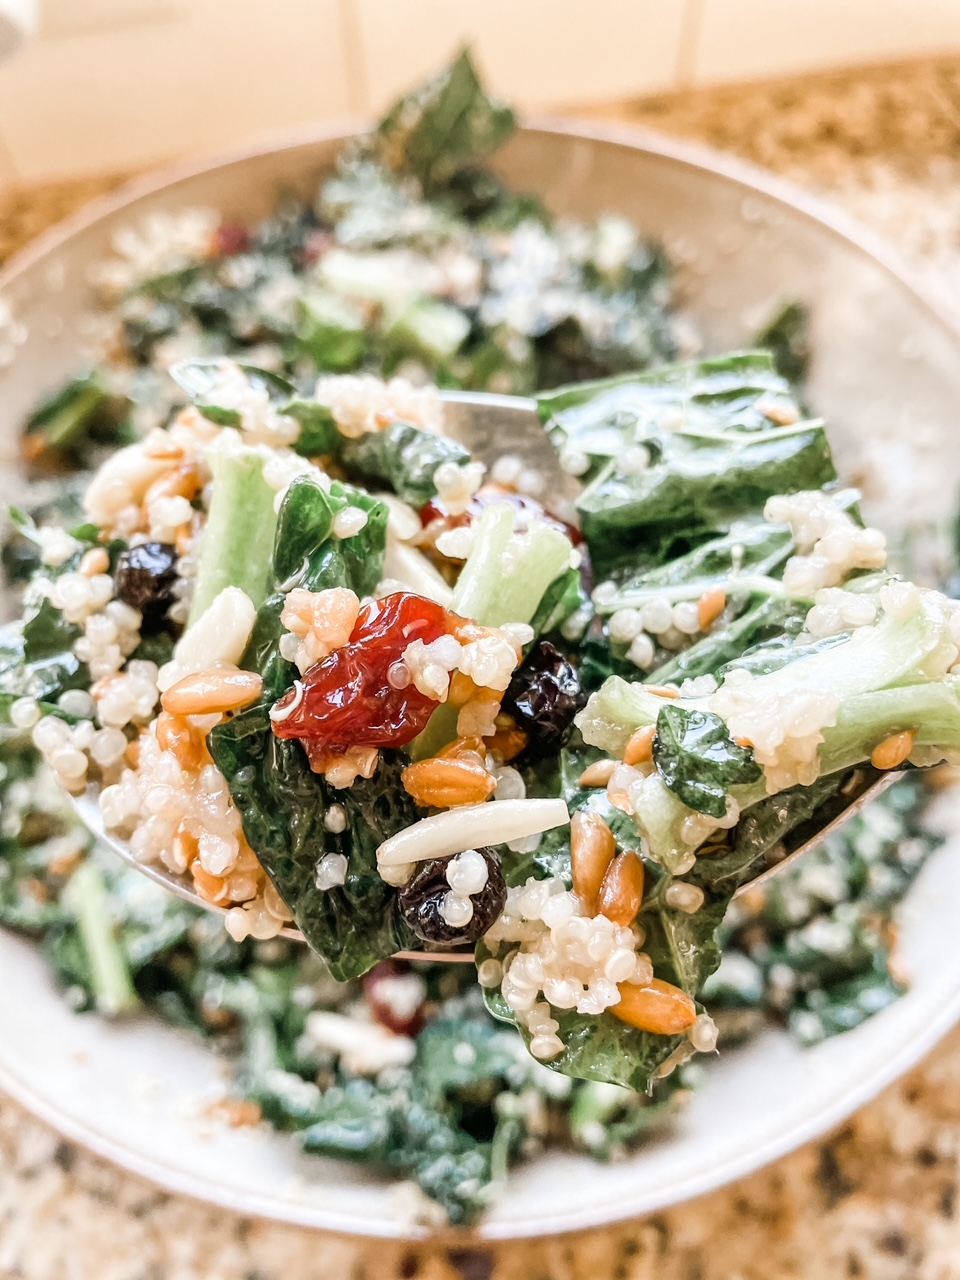 A forkful of the Superfood Salad Recipe held over a bowl